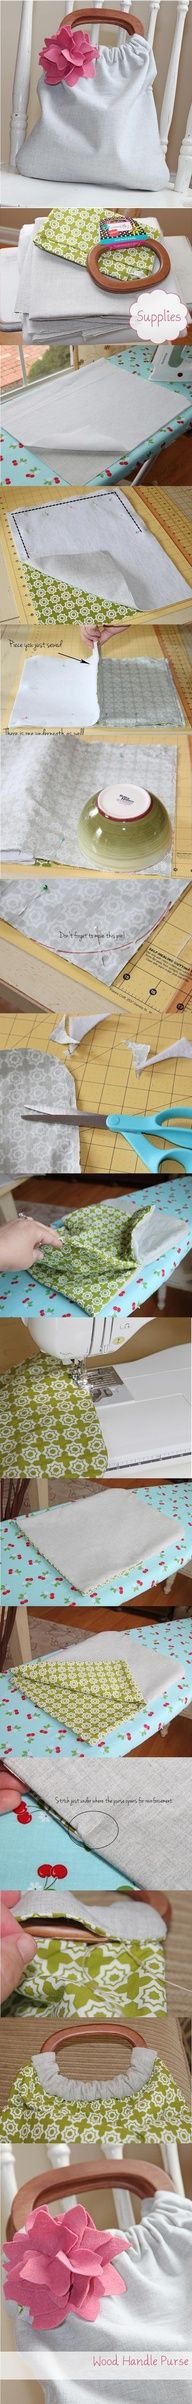 DIY: Bag Made ??With Wooden Handles And Fabric